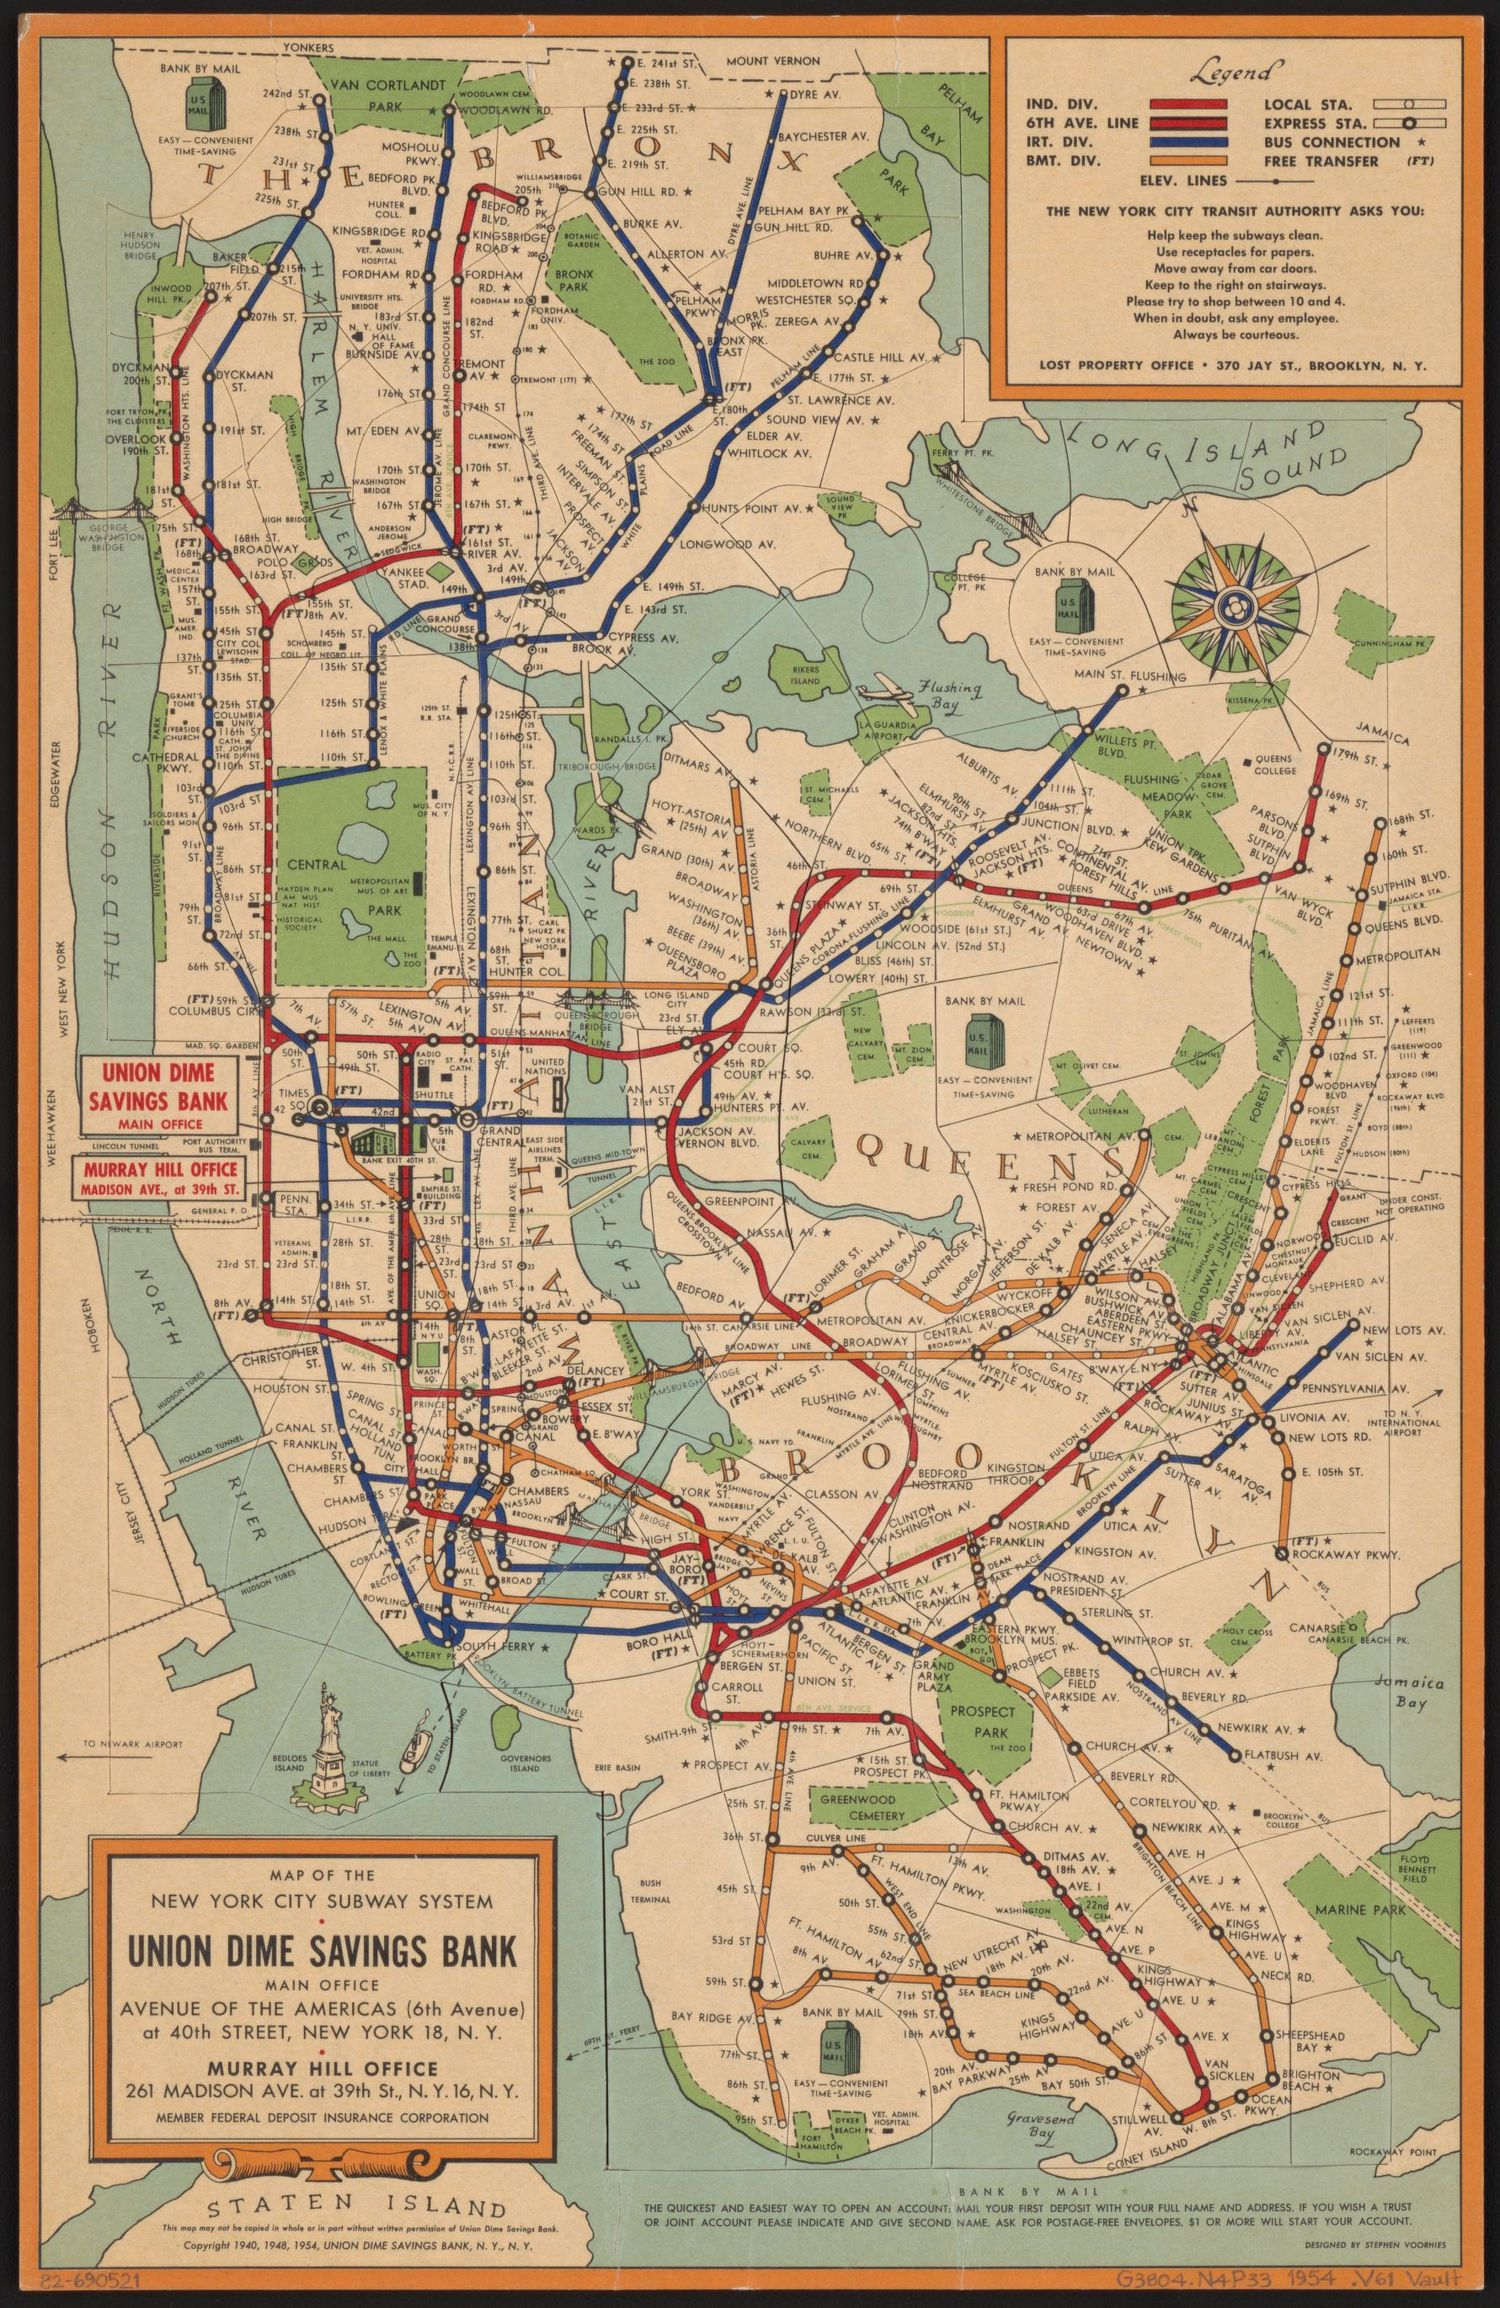 N R Subway Map Nyc.Maps Vintage Map Shows New York City Subway System In 1954